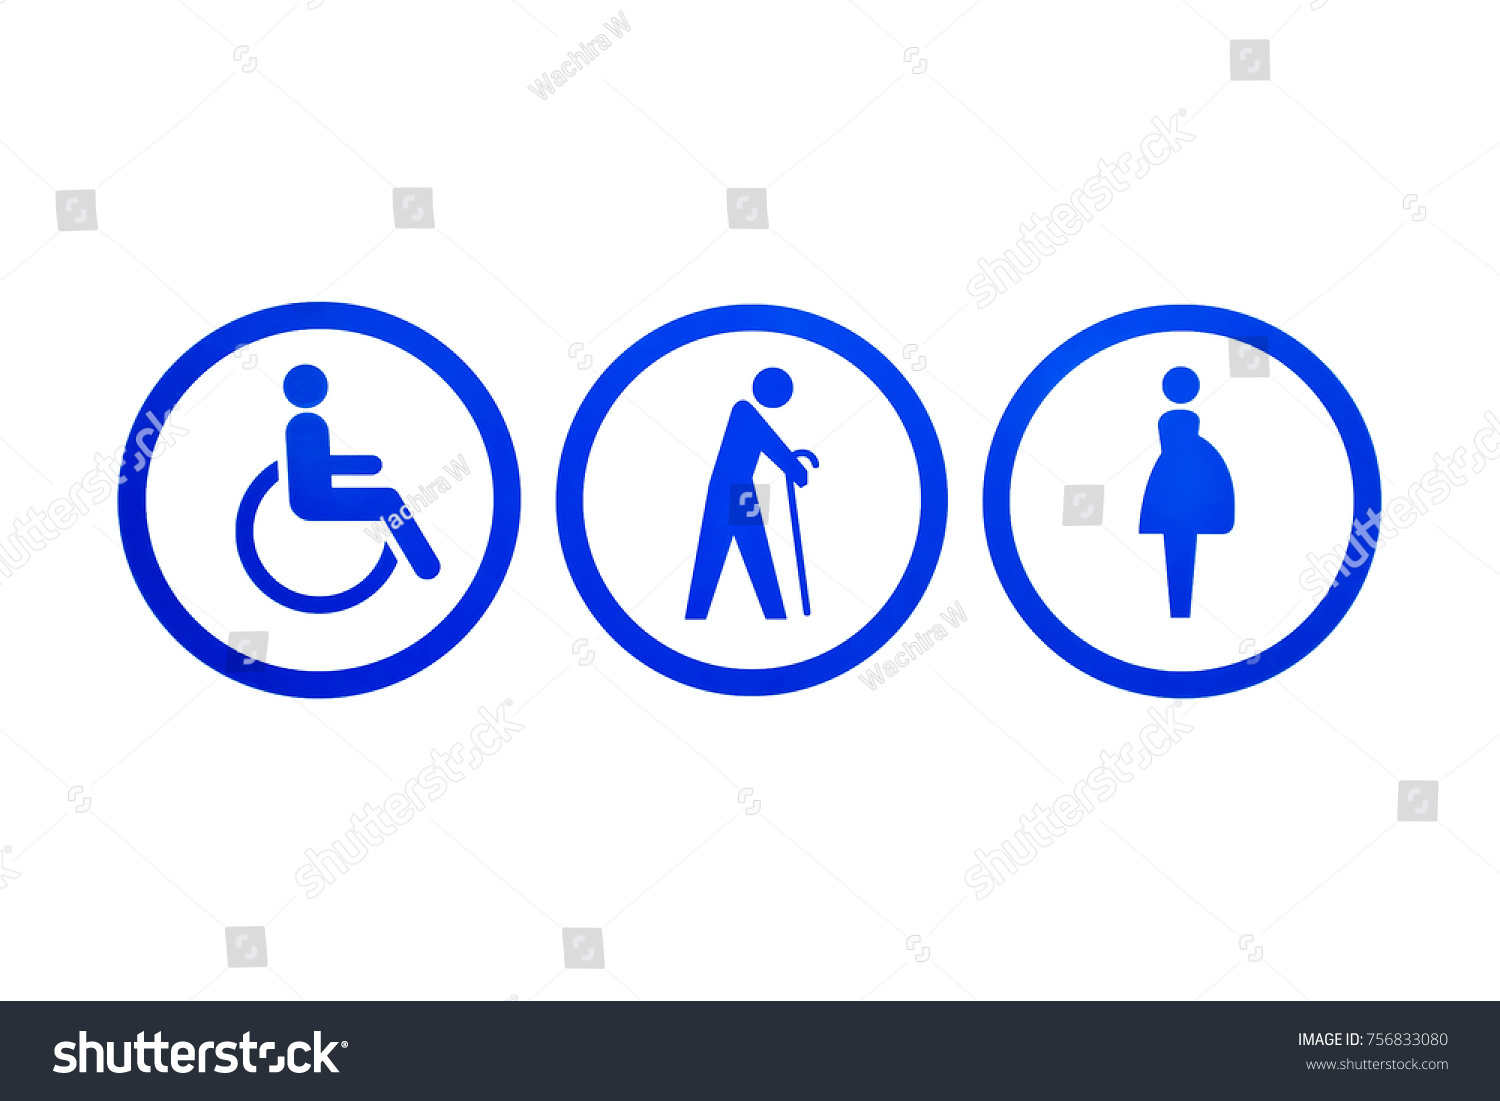 Signs symbols disabled seniors pregnant woman stock illustration signs symbols of disabled seniors and pregnant woman people icons for parking bathroom buycottarizona